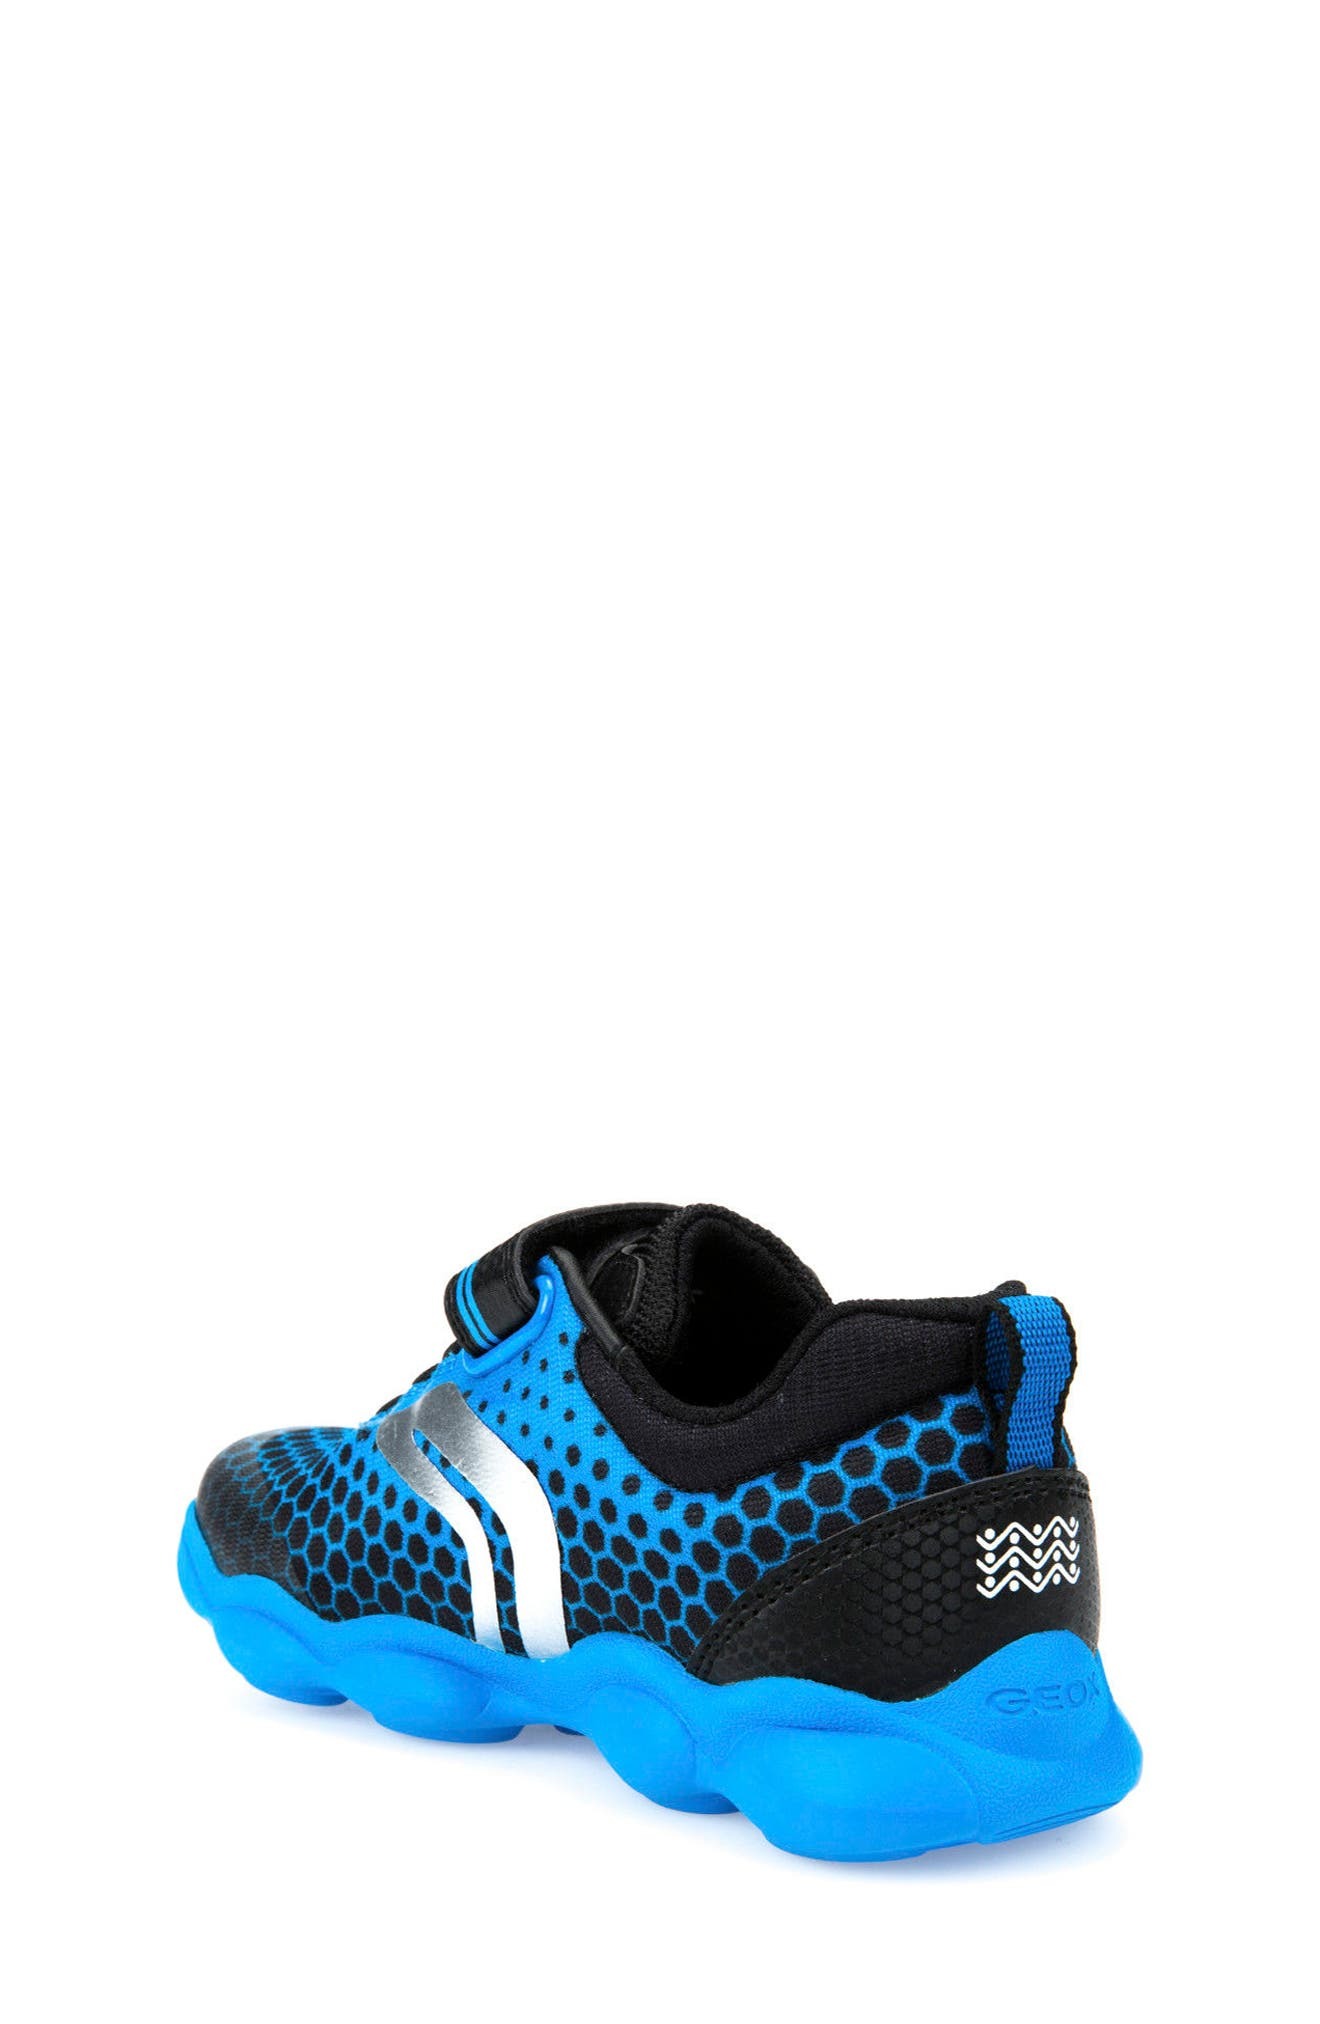 Munfrey Sneaker,                             Alternate thumbnail 2, color,                             Light Blue/ Black